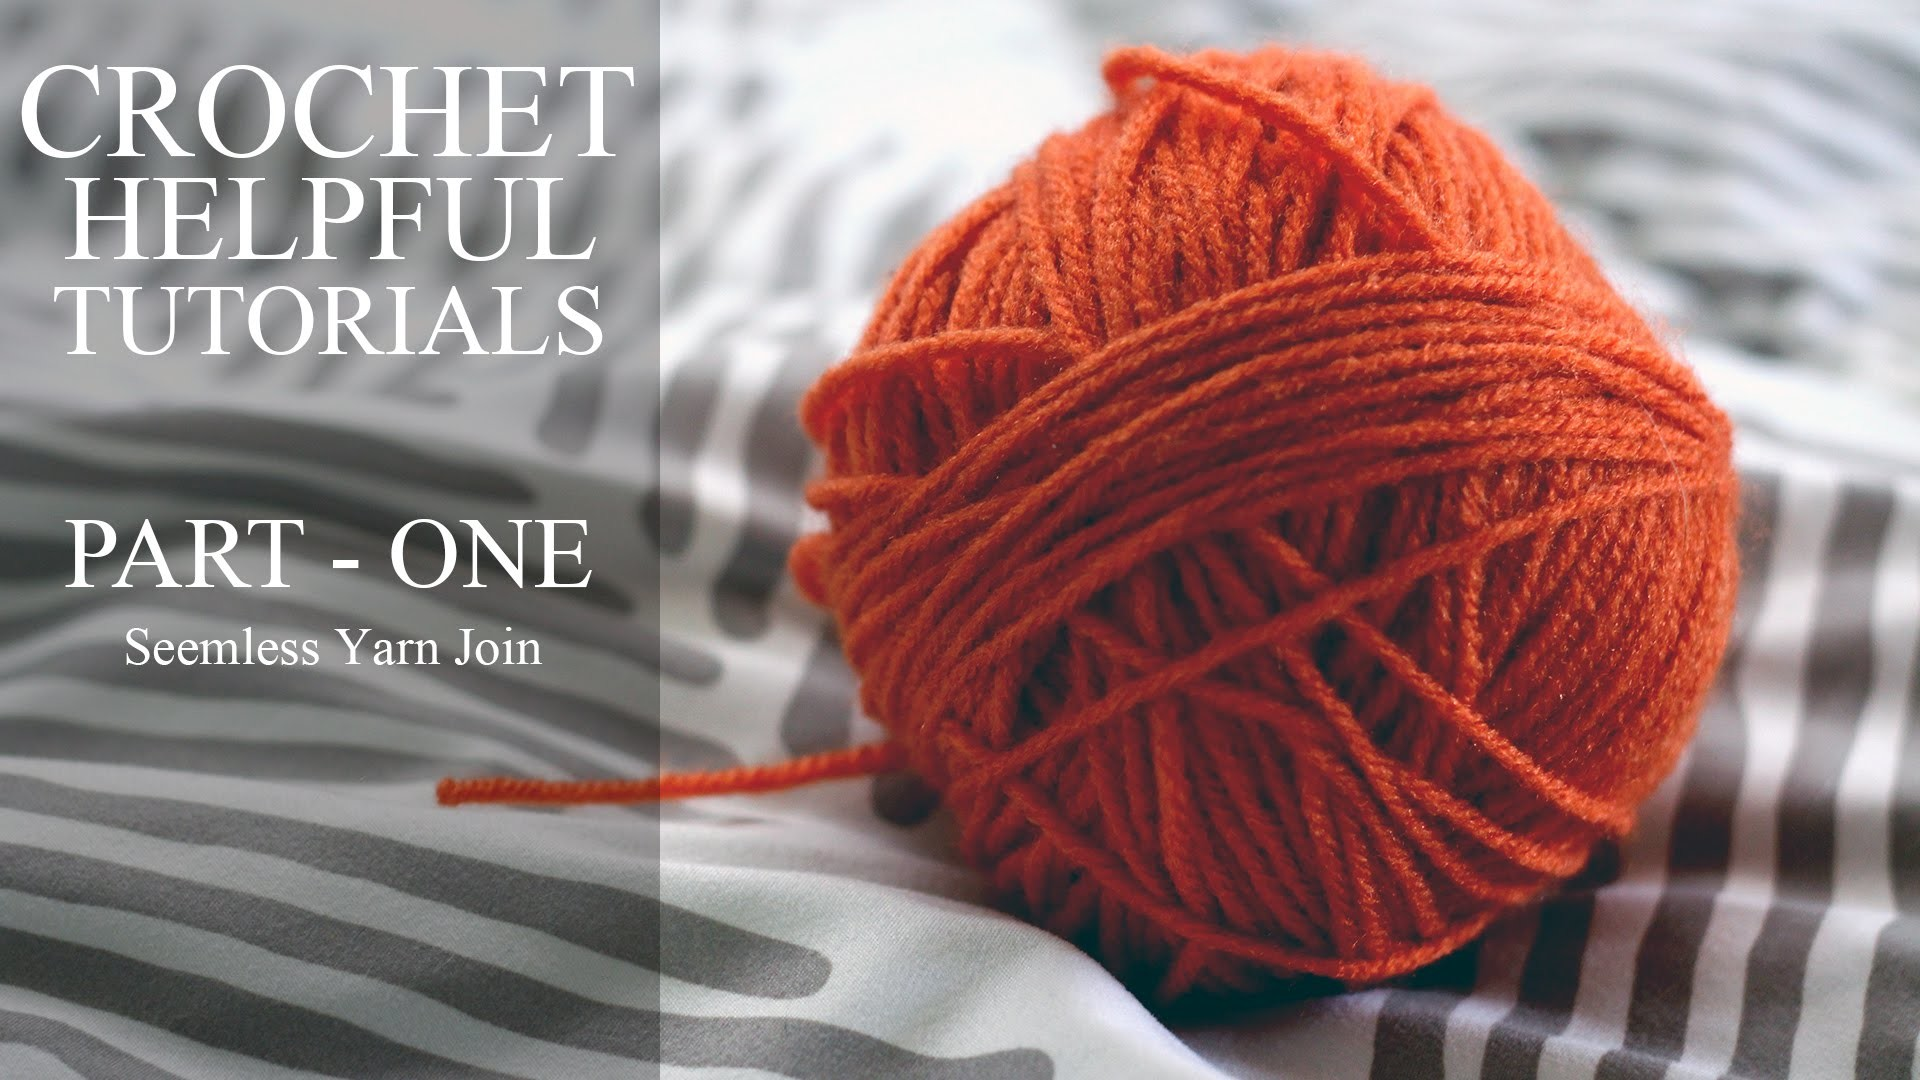 Joining Working yarn to New yarn for Crochet, Knitting, Crafts.